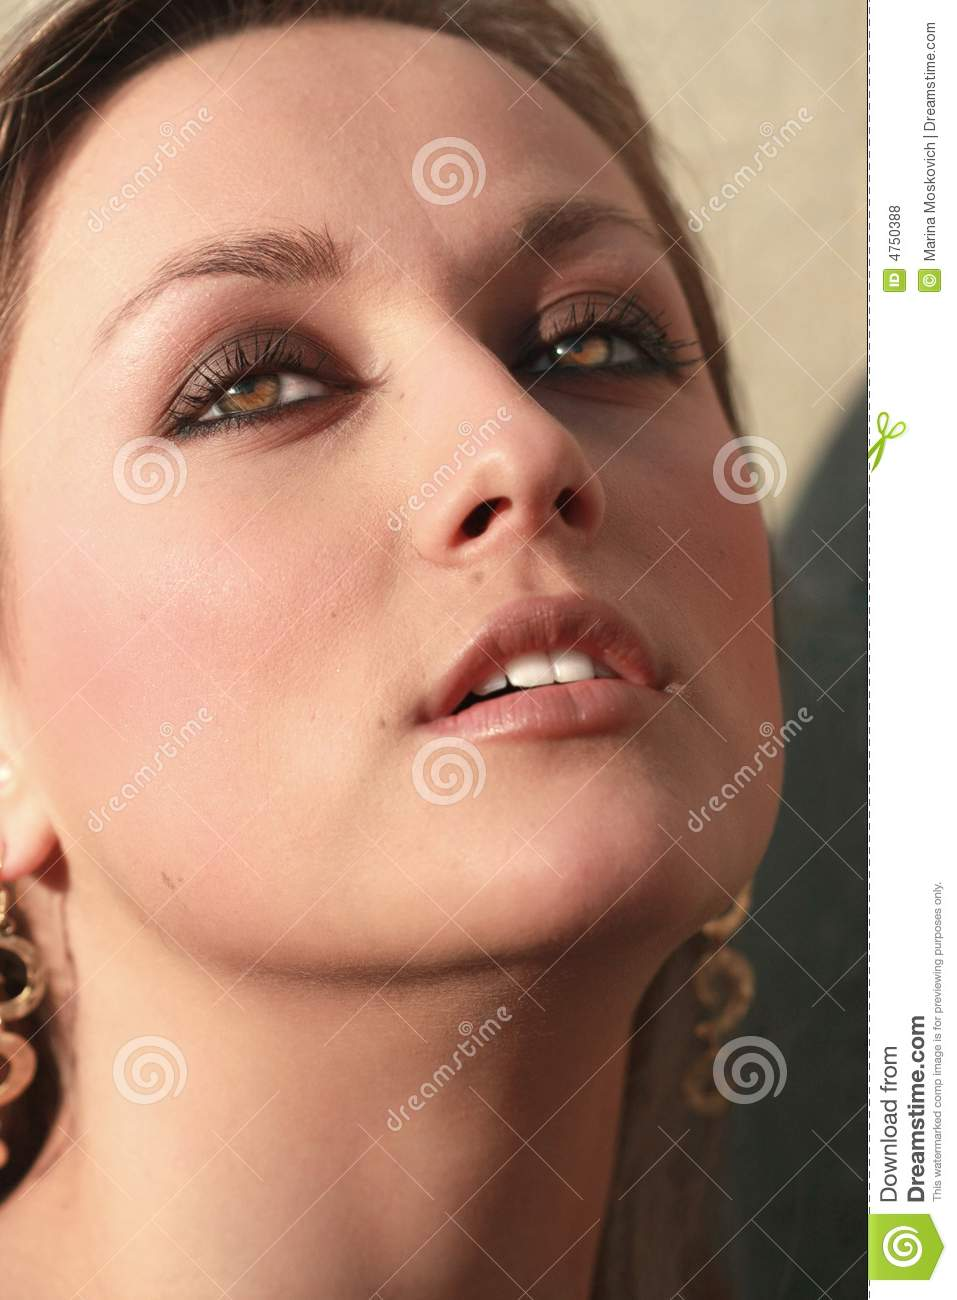 Very Beautiful Blond Teen Girl With: Very Beautiful Woman Face Stock Photo. Image Of